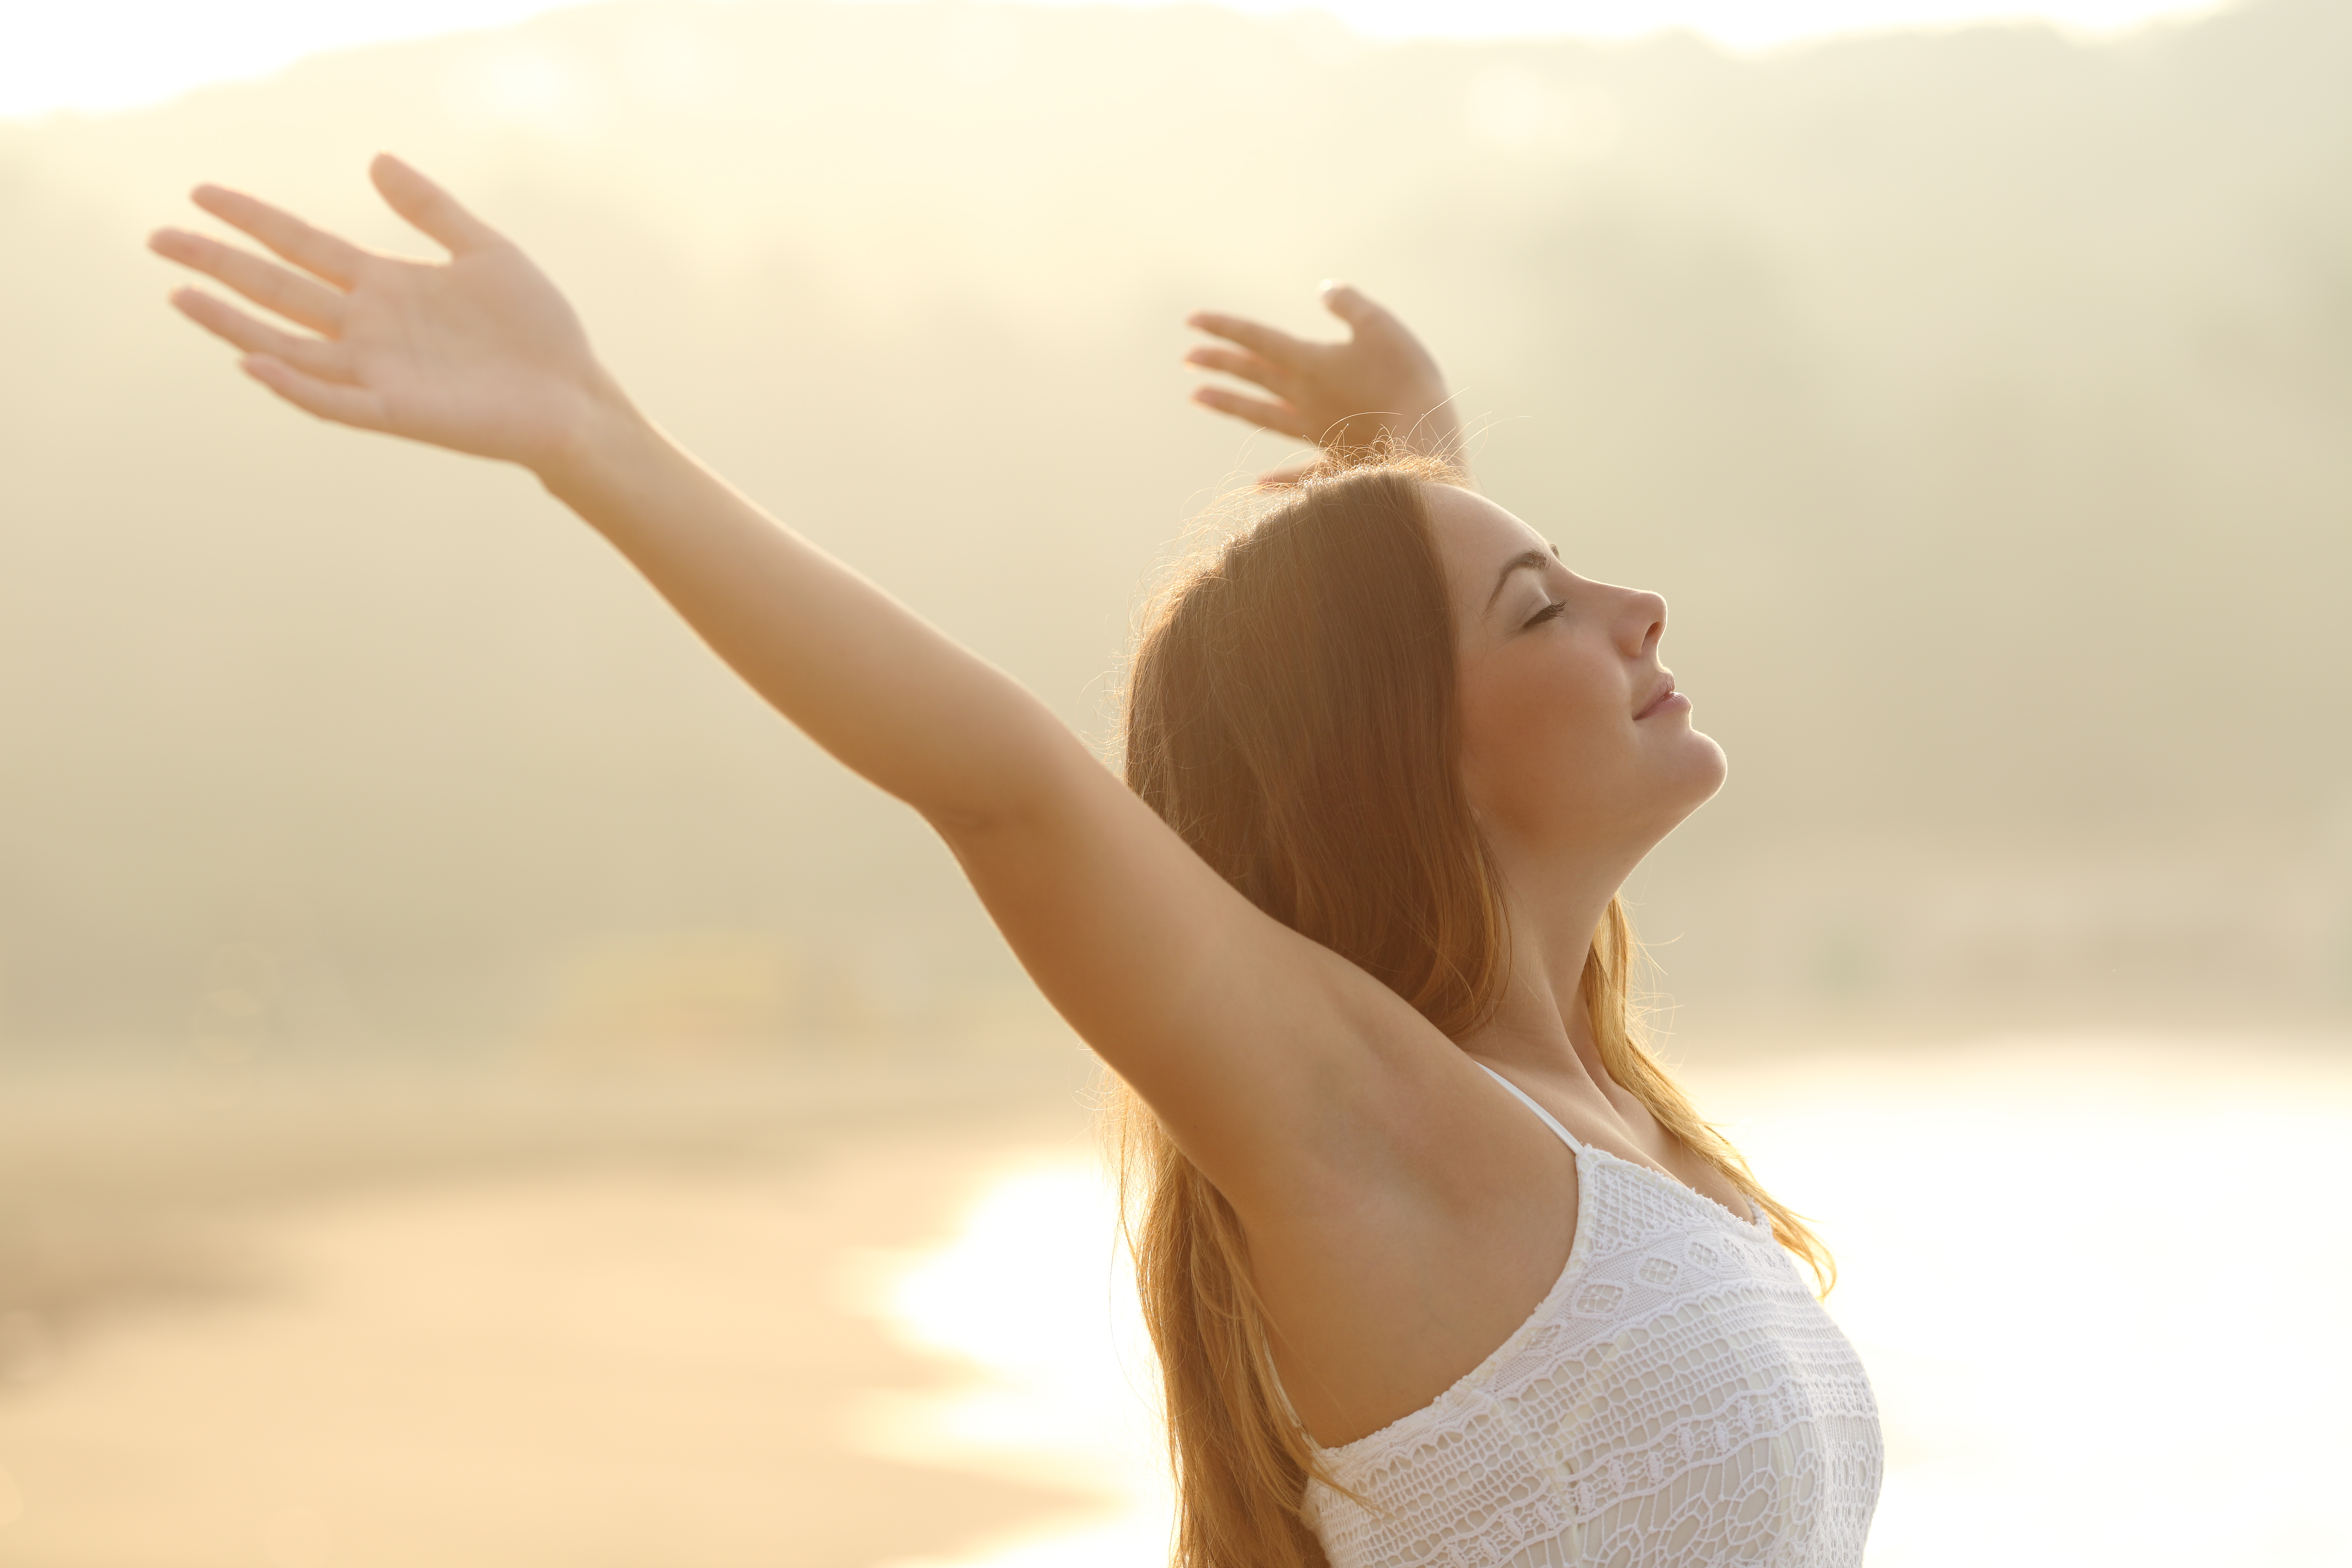 Canva - Relaxed woman breathing fresh air raising arms at sunrise